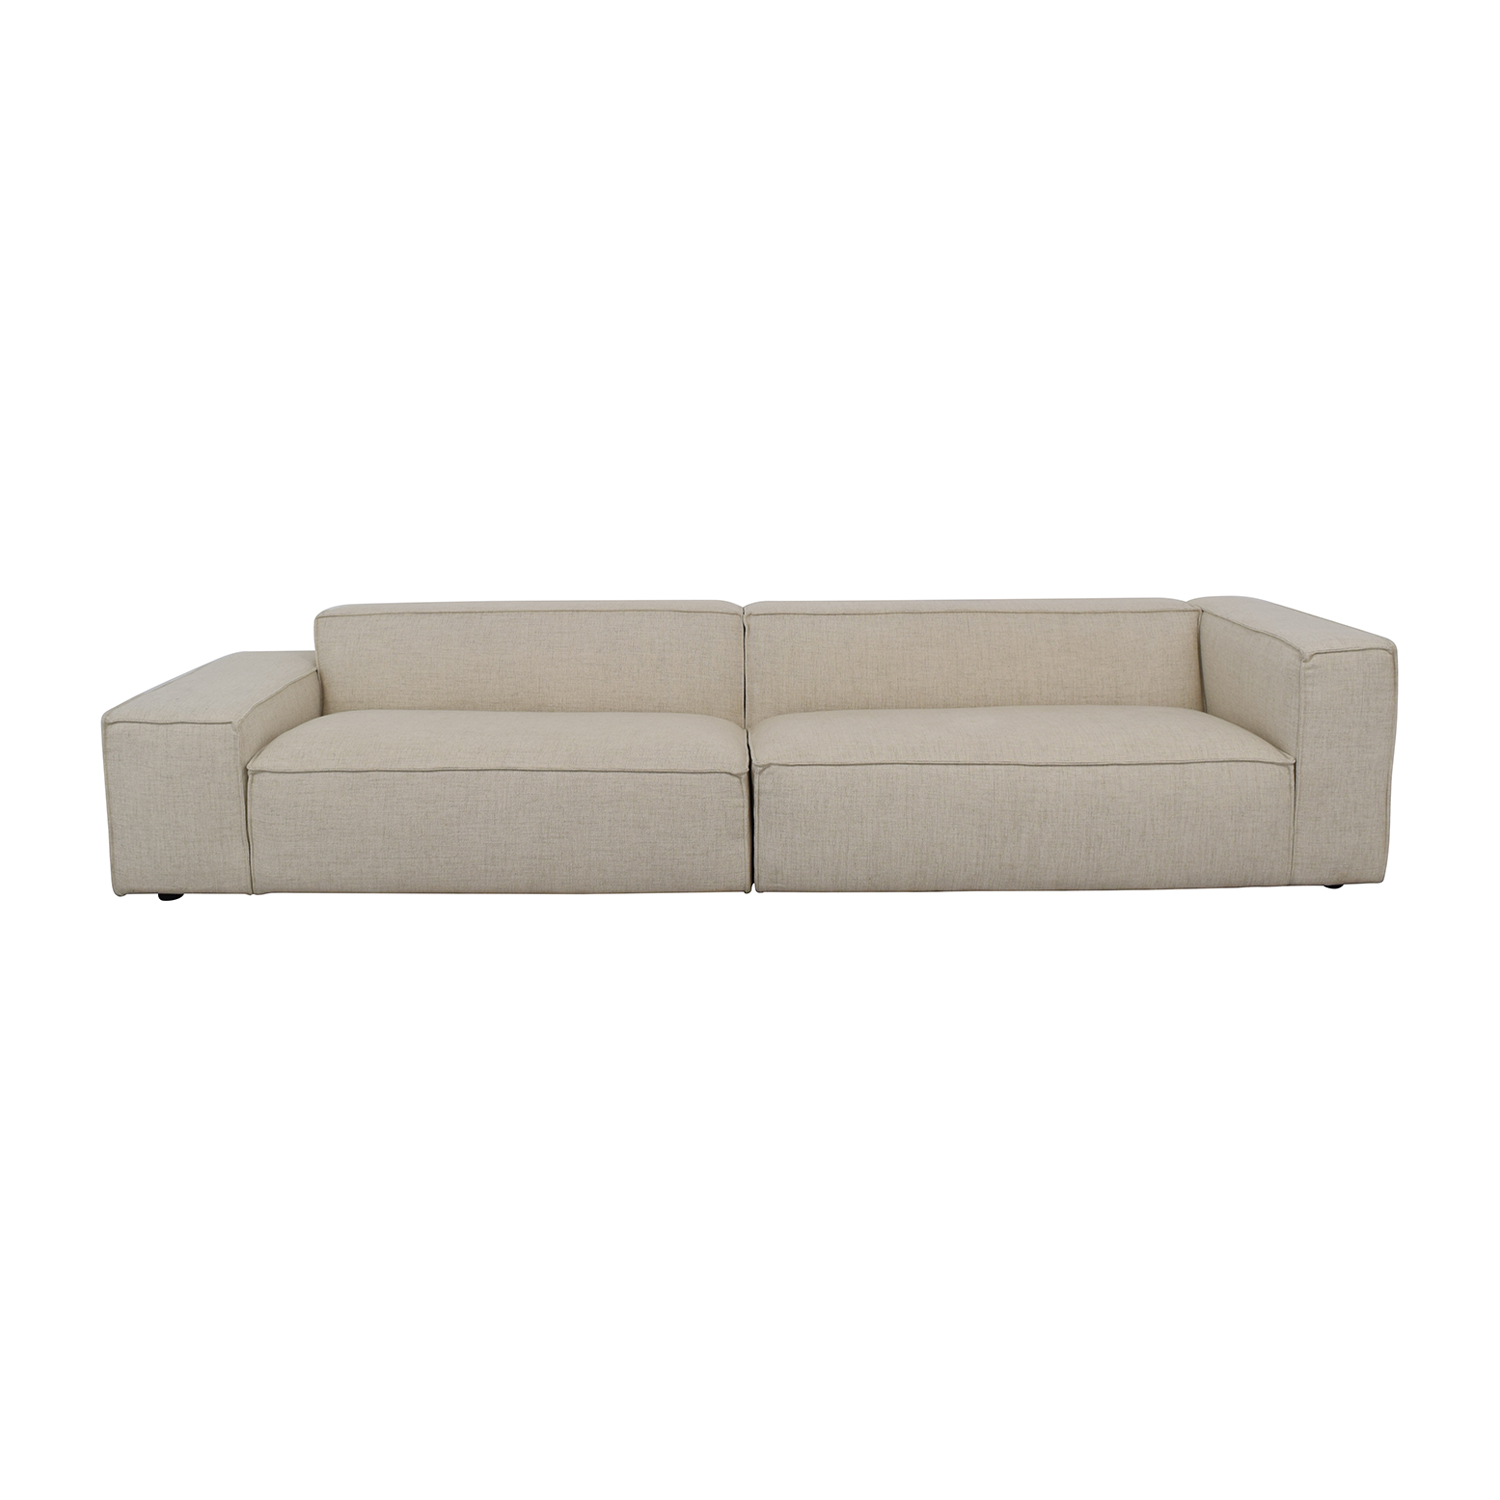 buy  Beige Left Low Right High Two Piece Pebble Weave Sectional Sofa online